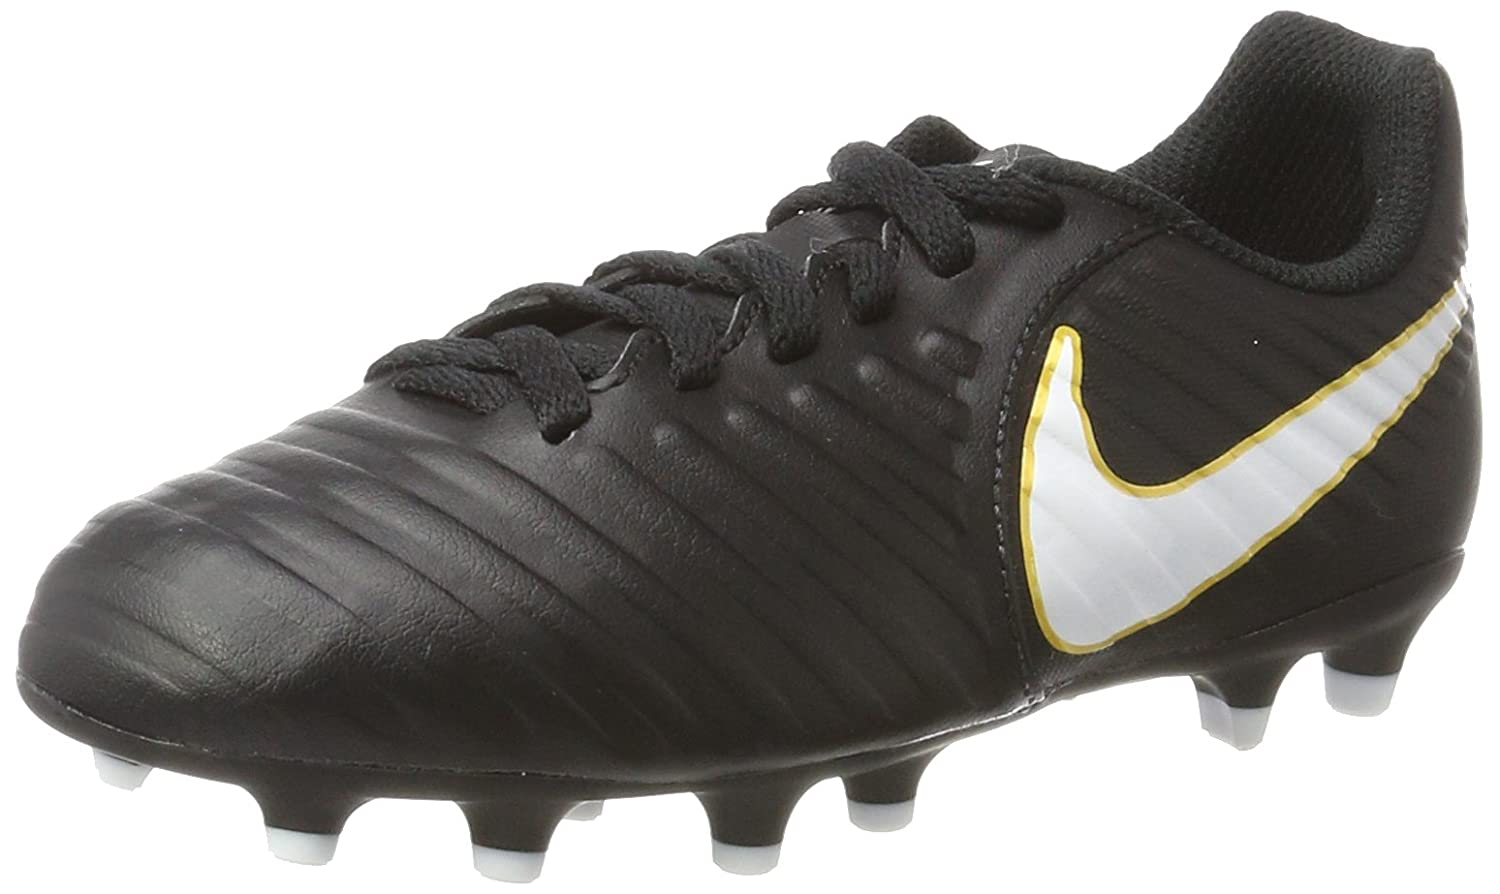 47f1c2325955 Amazon.com | Nike Kids Jr. Tiempo Rio IV (FG) Firm Ground Soccer Cleat |  Soccer